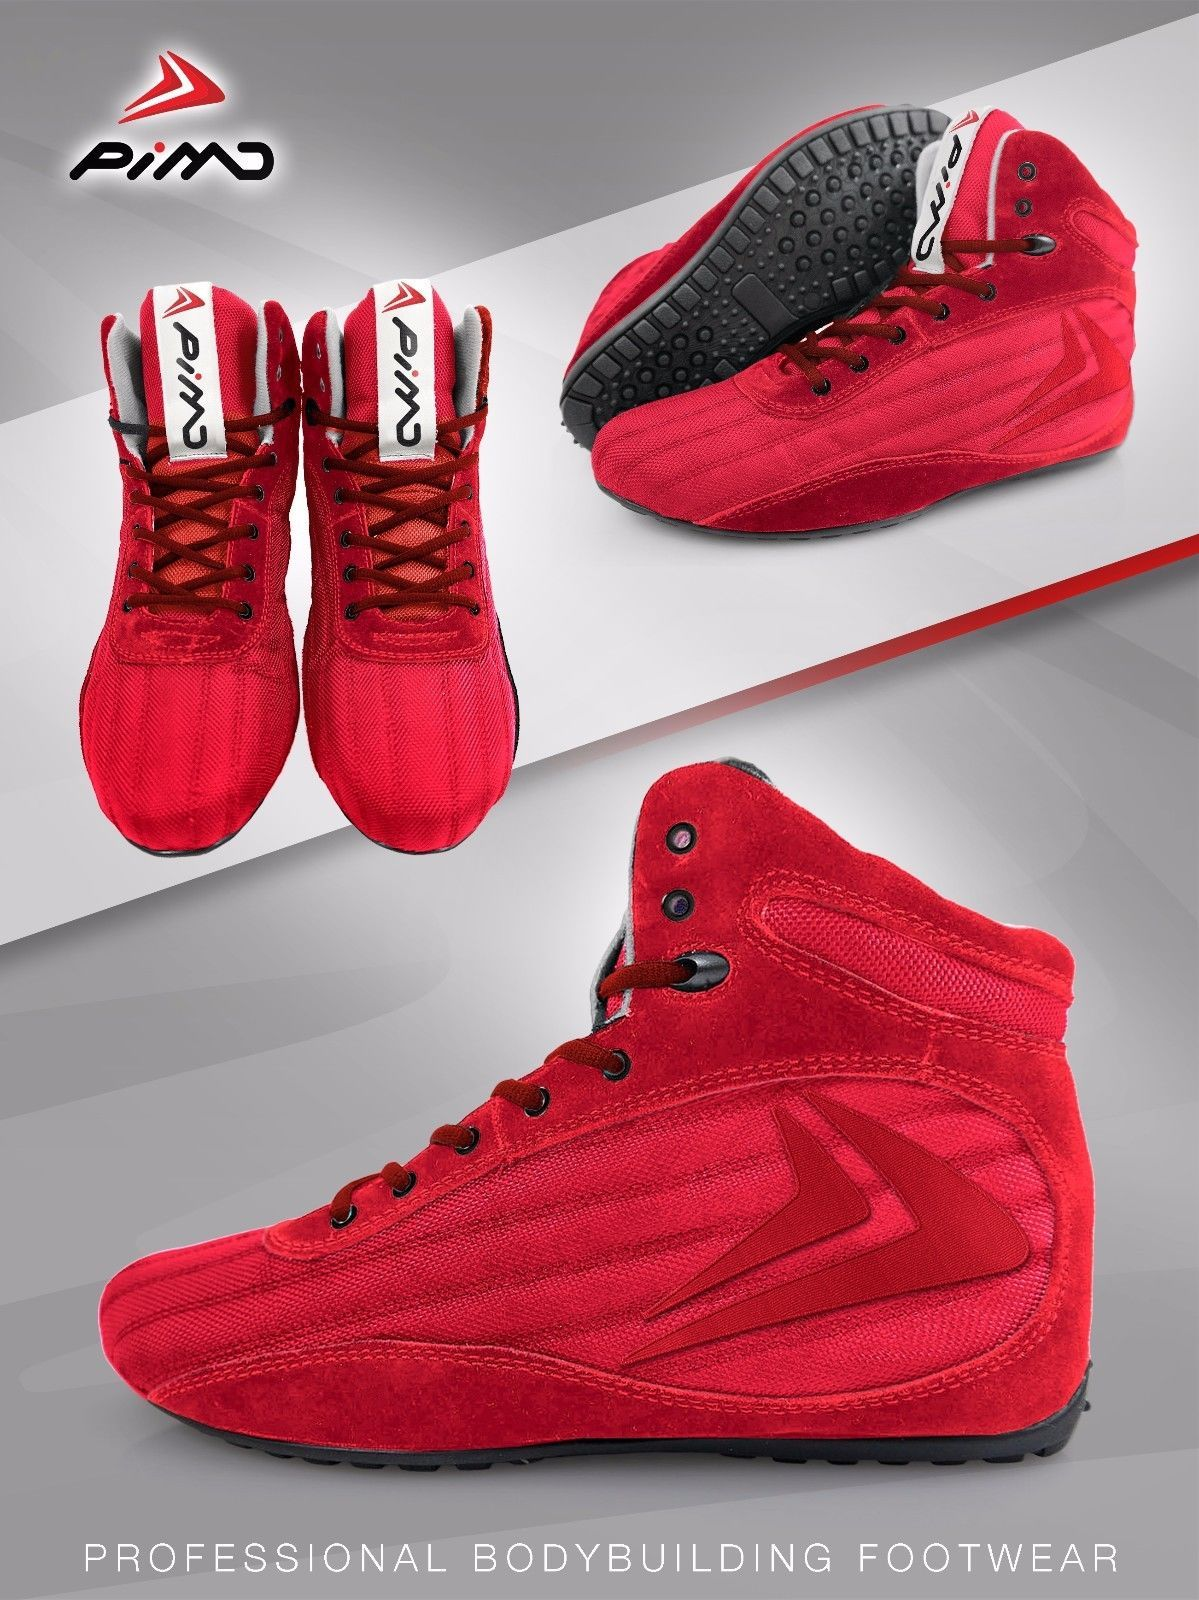 3dea184116b1 Pimd red  x-core gym  shoes weight lifting high top boots bodybuilding mma